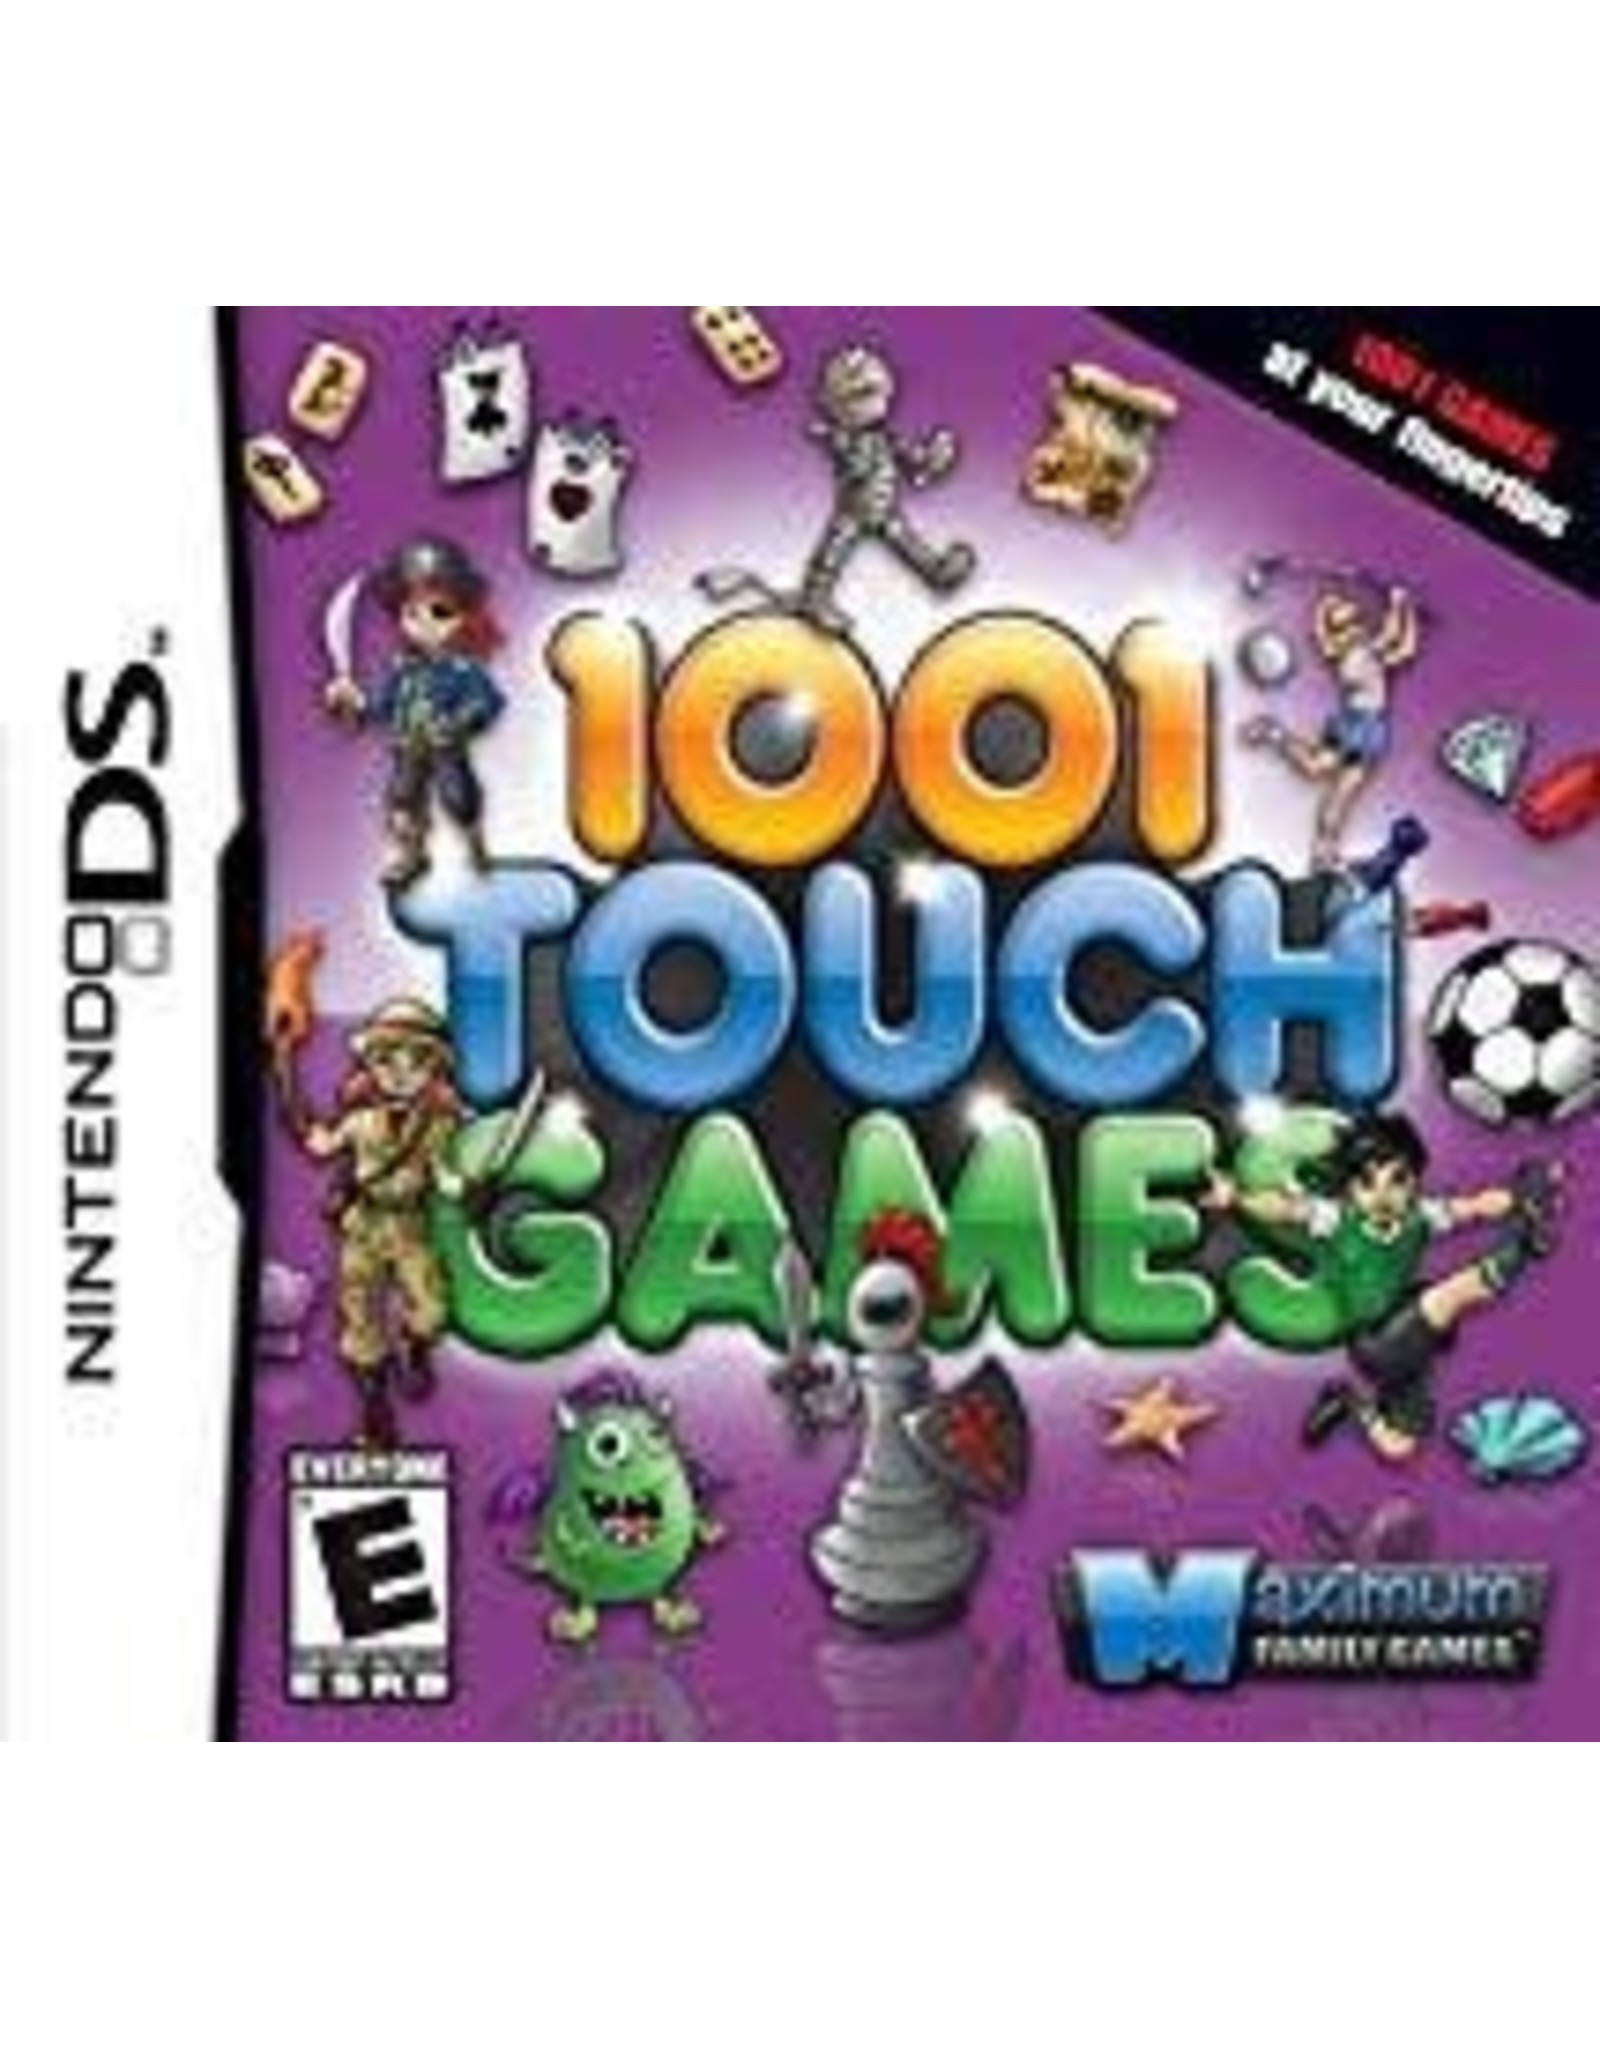 Nintendo DS 1001 Touch Games